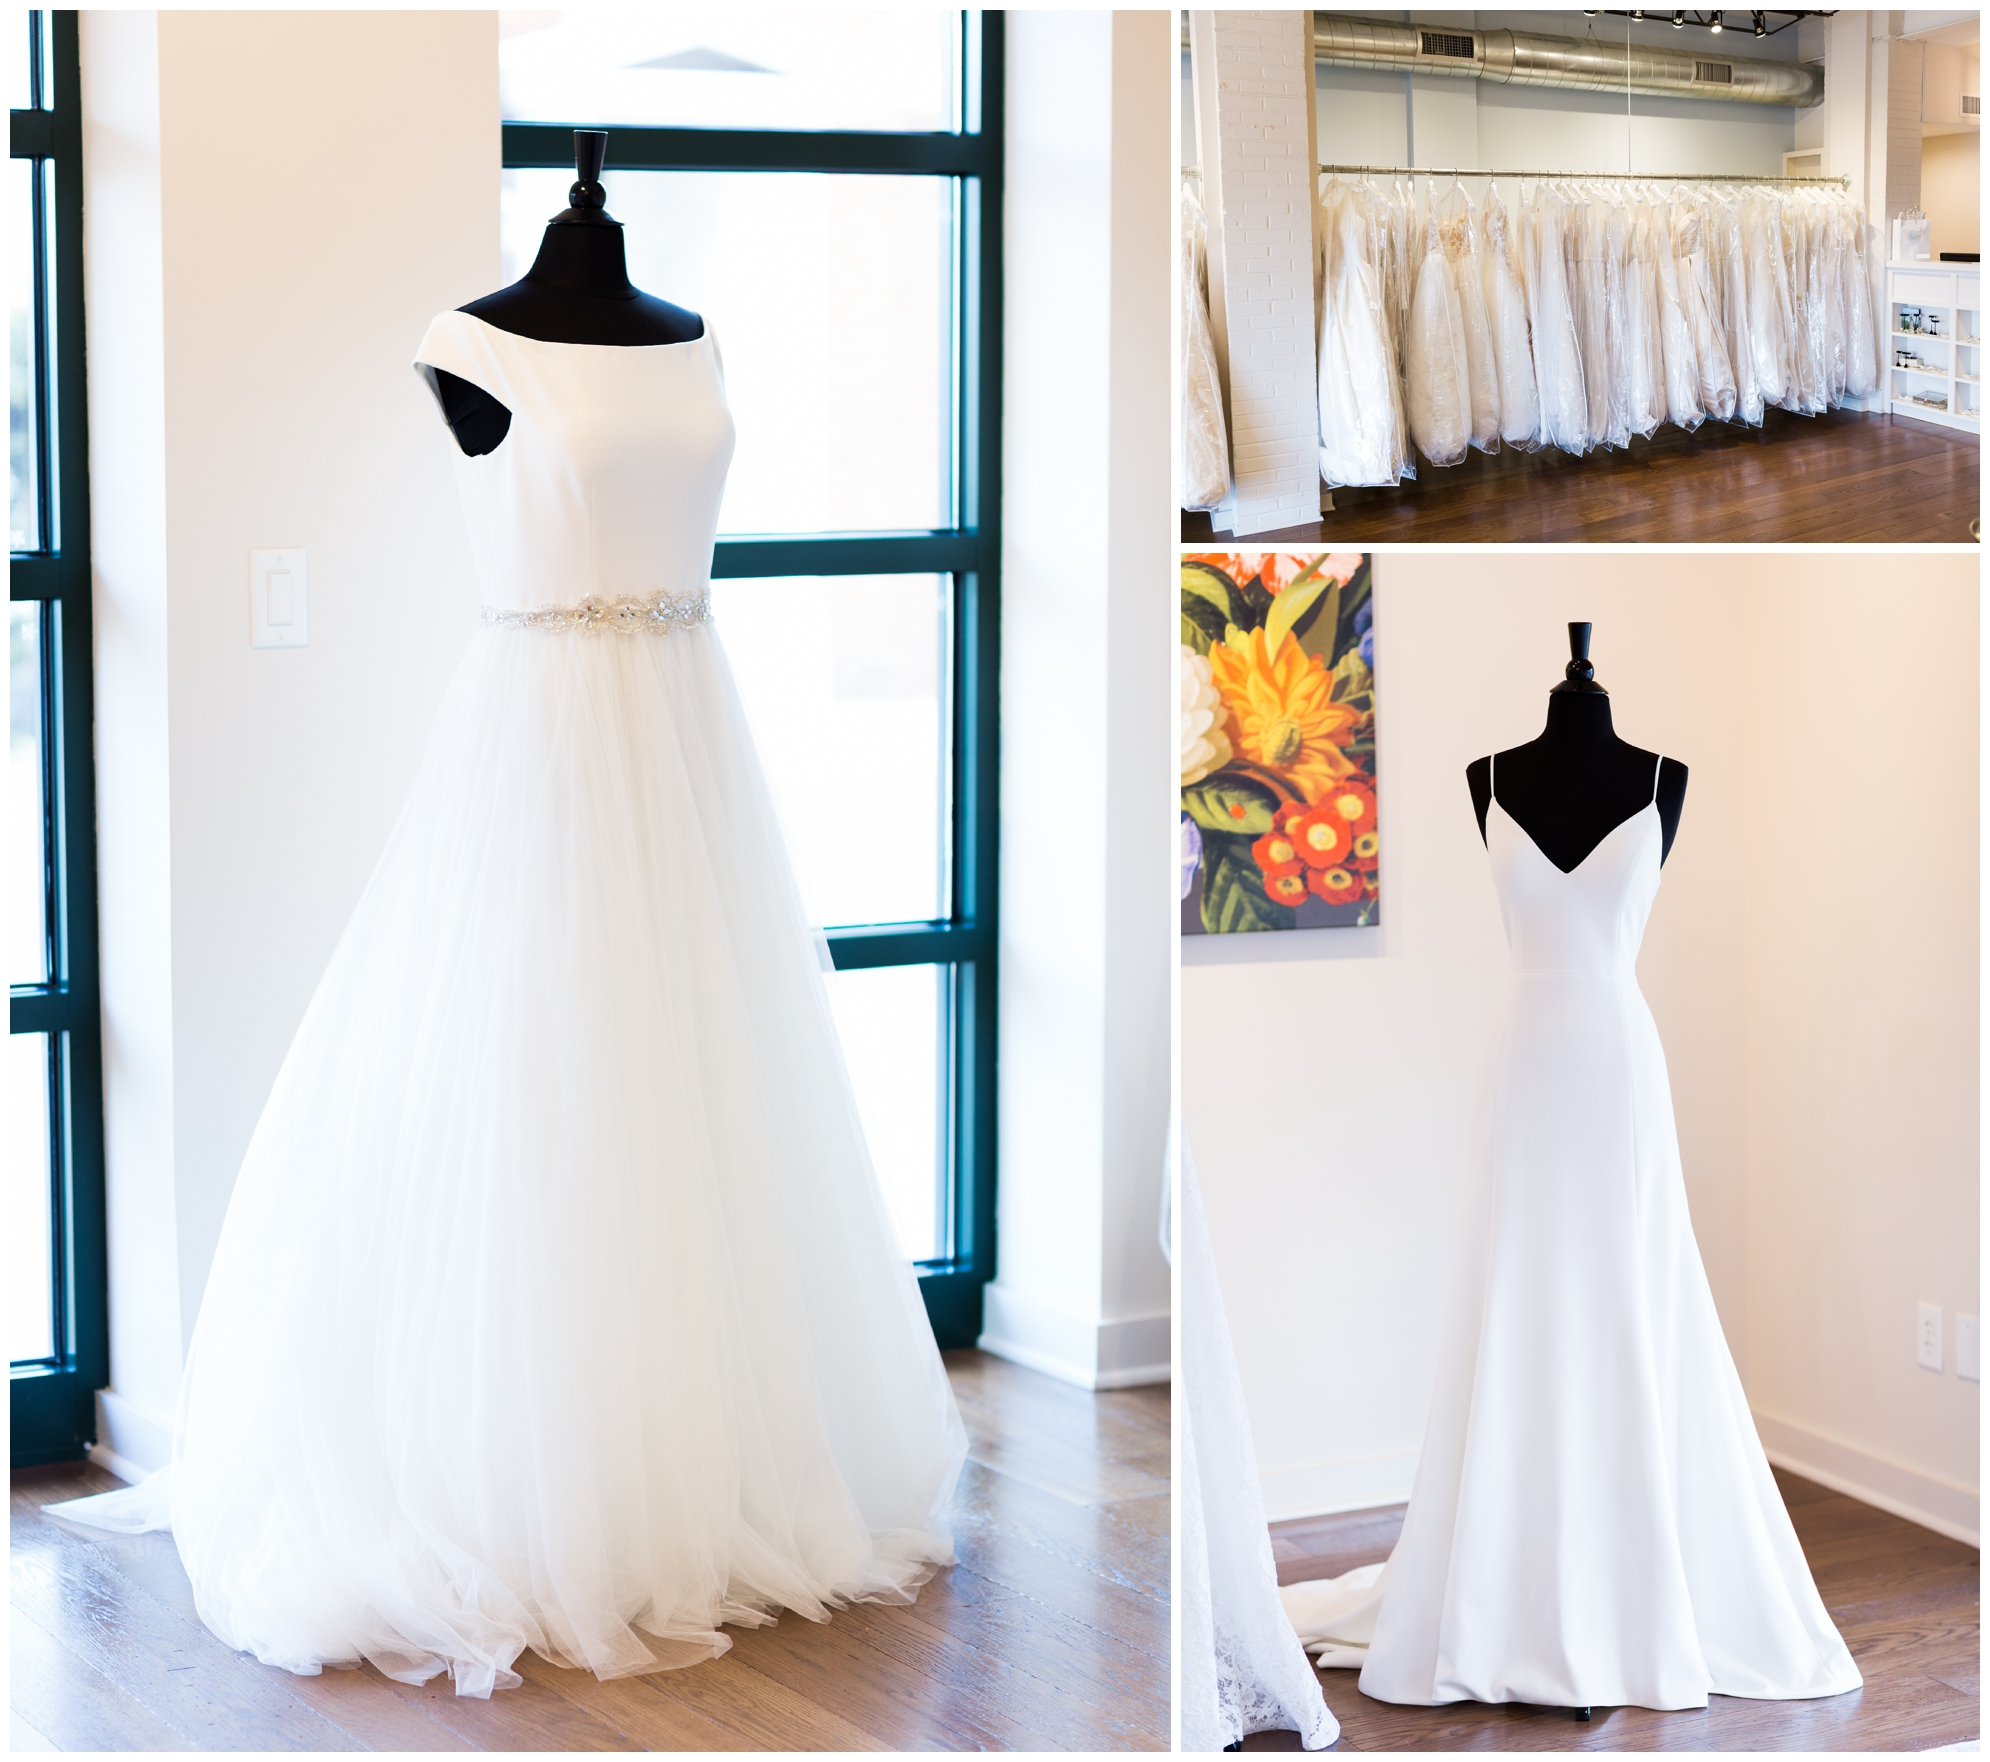 Classic bridal salon in Charlottesville, Virginia featuring modern and timeless dresses and bridal accessories perfect for a Virginia wedding